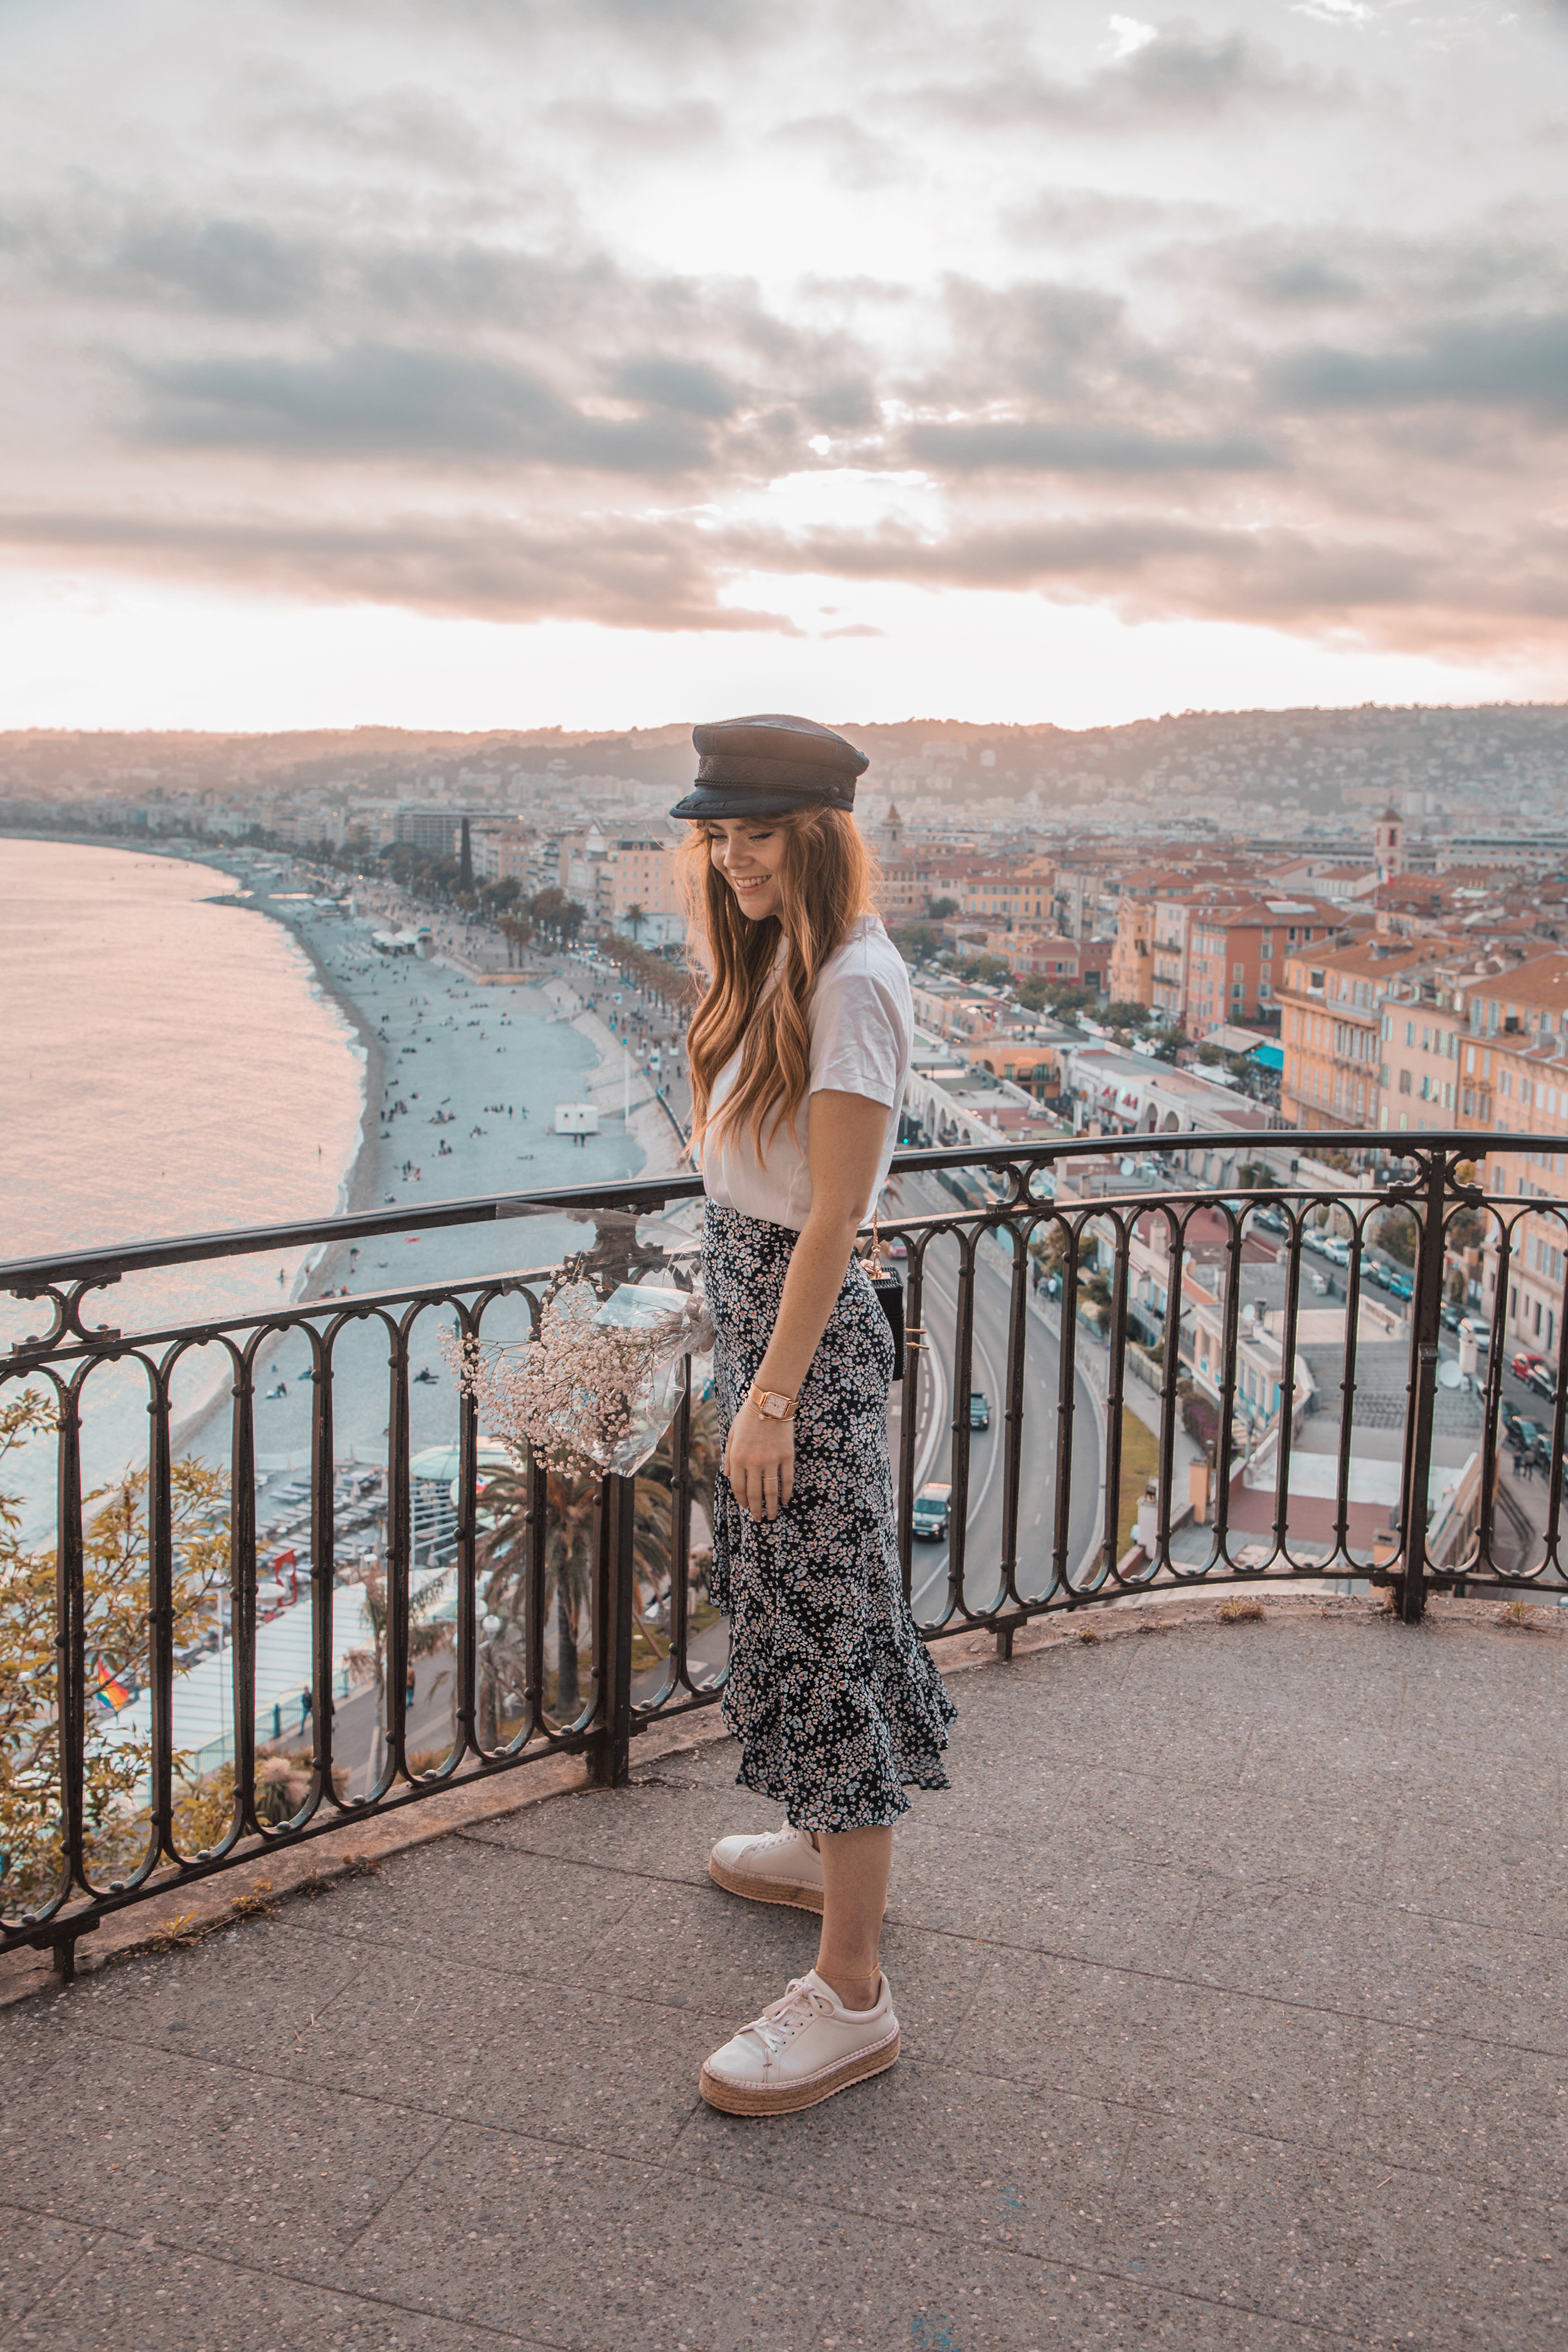 cluse_nice-france-sunset-lookout_6.jpg